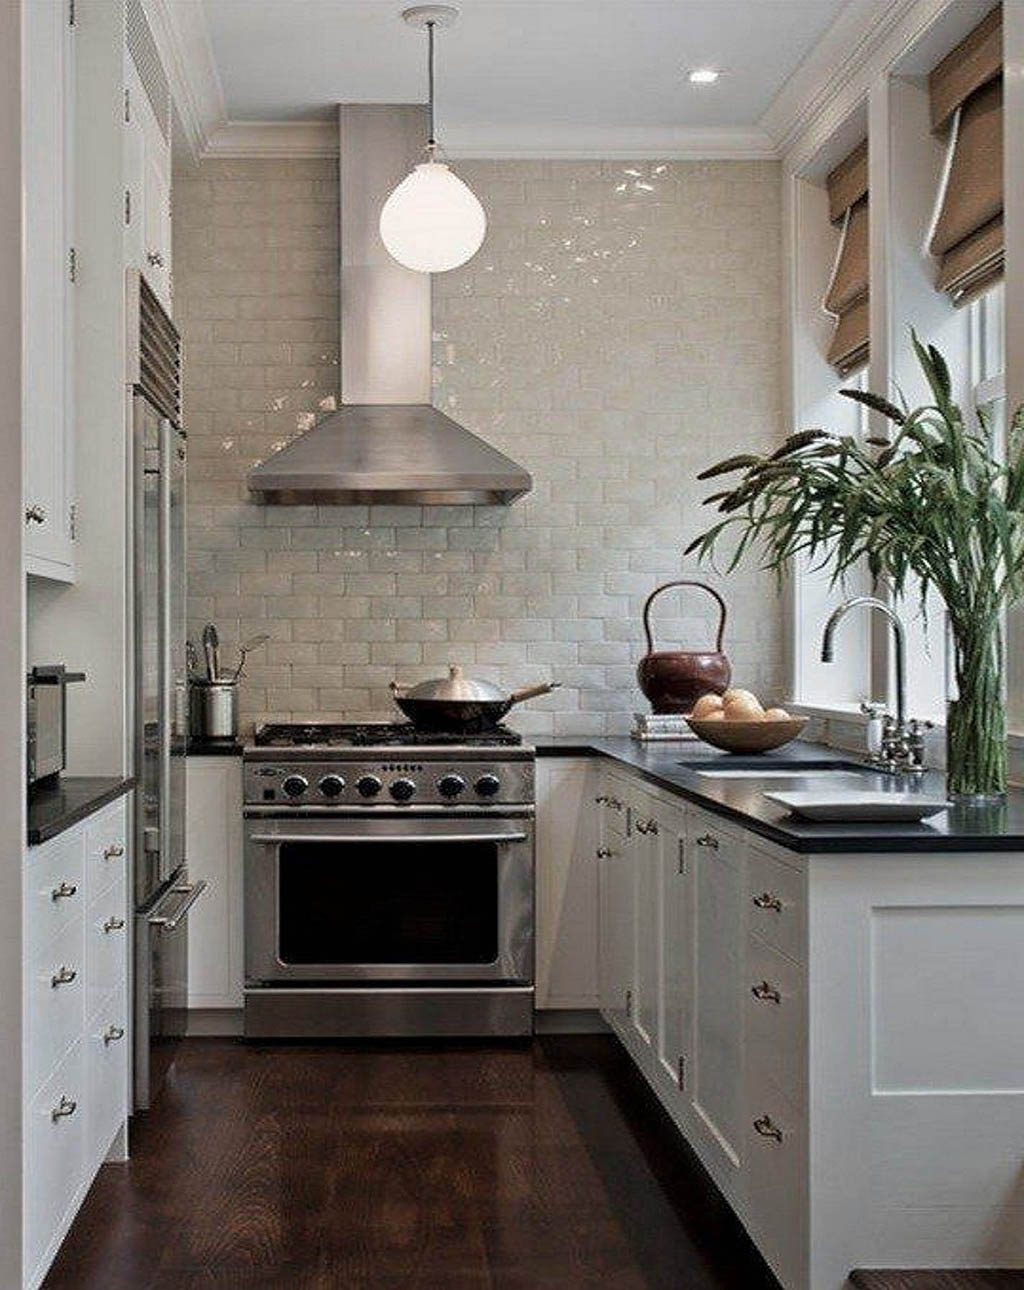 4 ways to make the most of a small kitchen remodel for Kitchen setup ideas